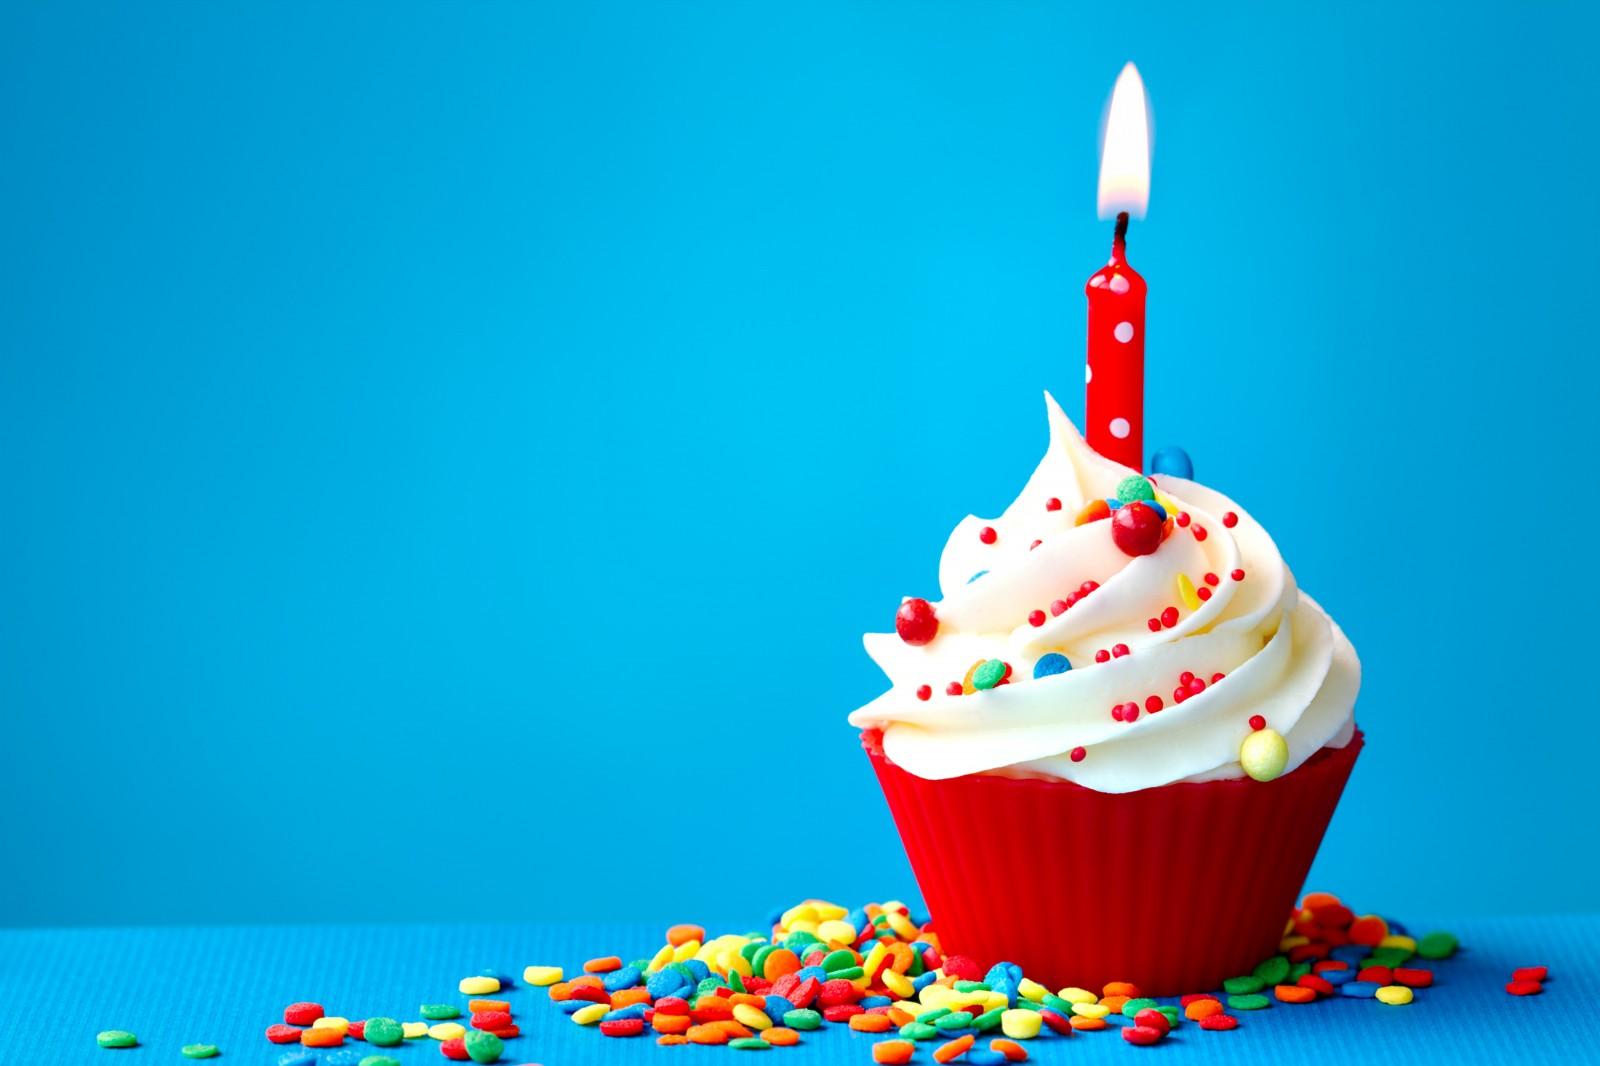 Happy-birthday-cupcake-wallpaper-2